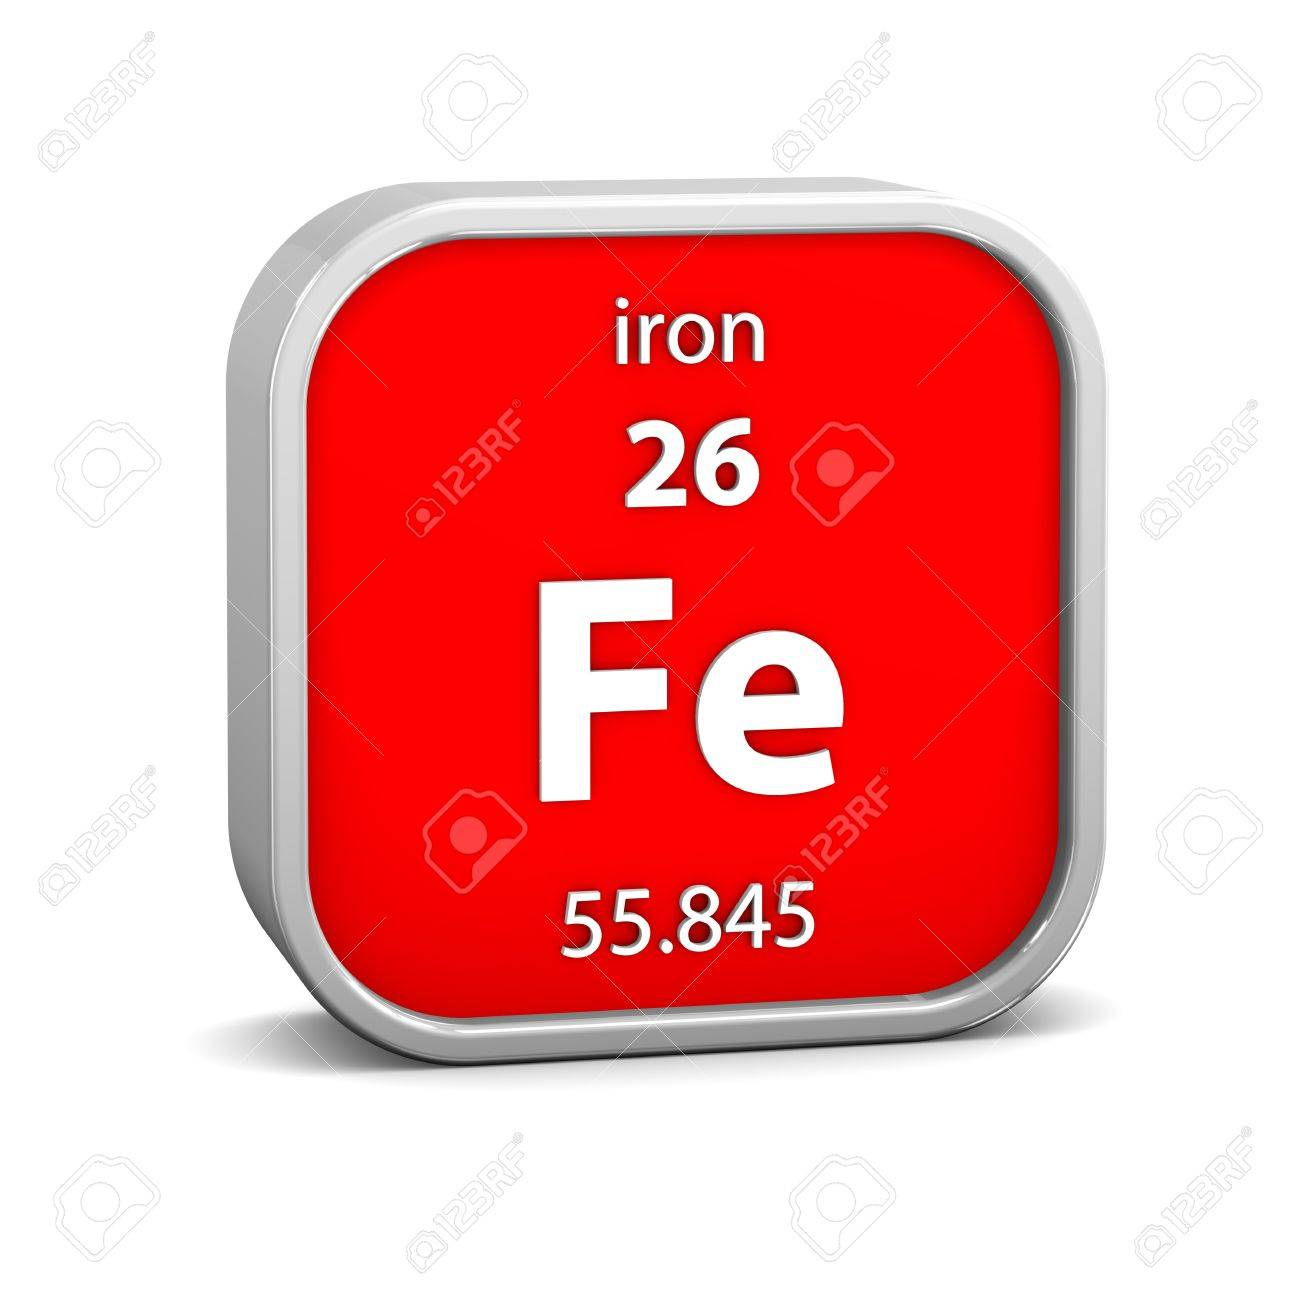 Whats iron on the periodic table images periodic table images symbol for iron on periodic table choice image periodic table images whats iron on the periodic gamestrikefo Choice Image